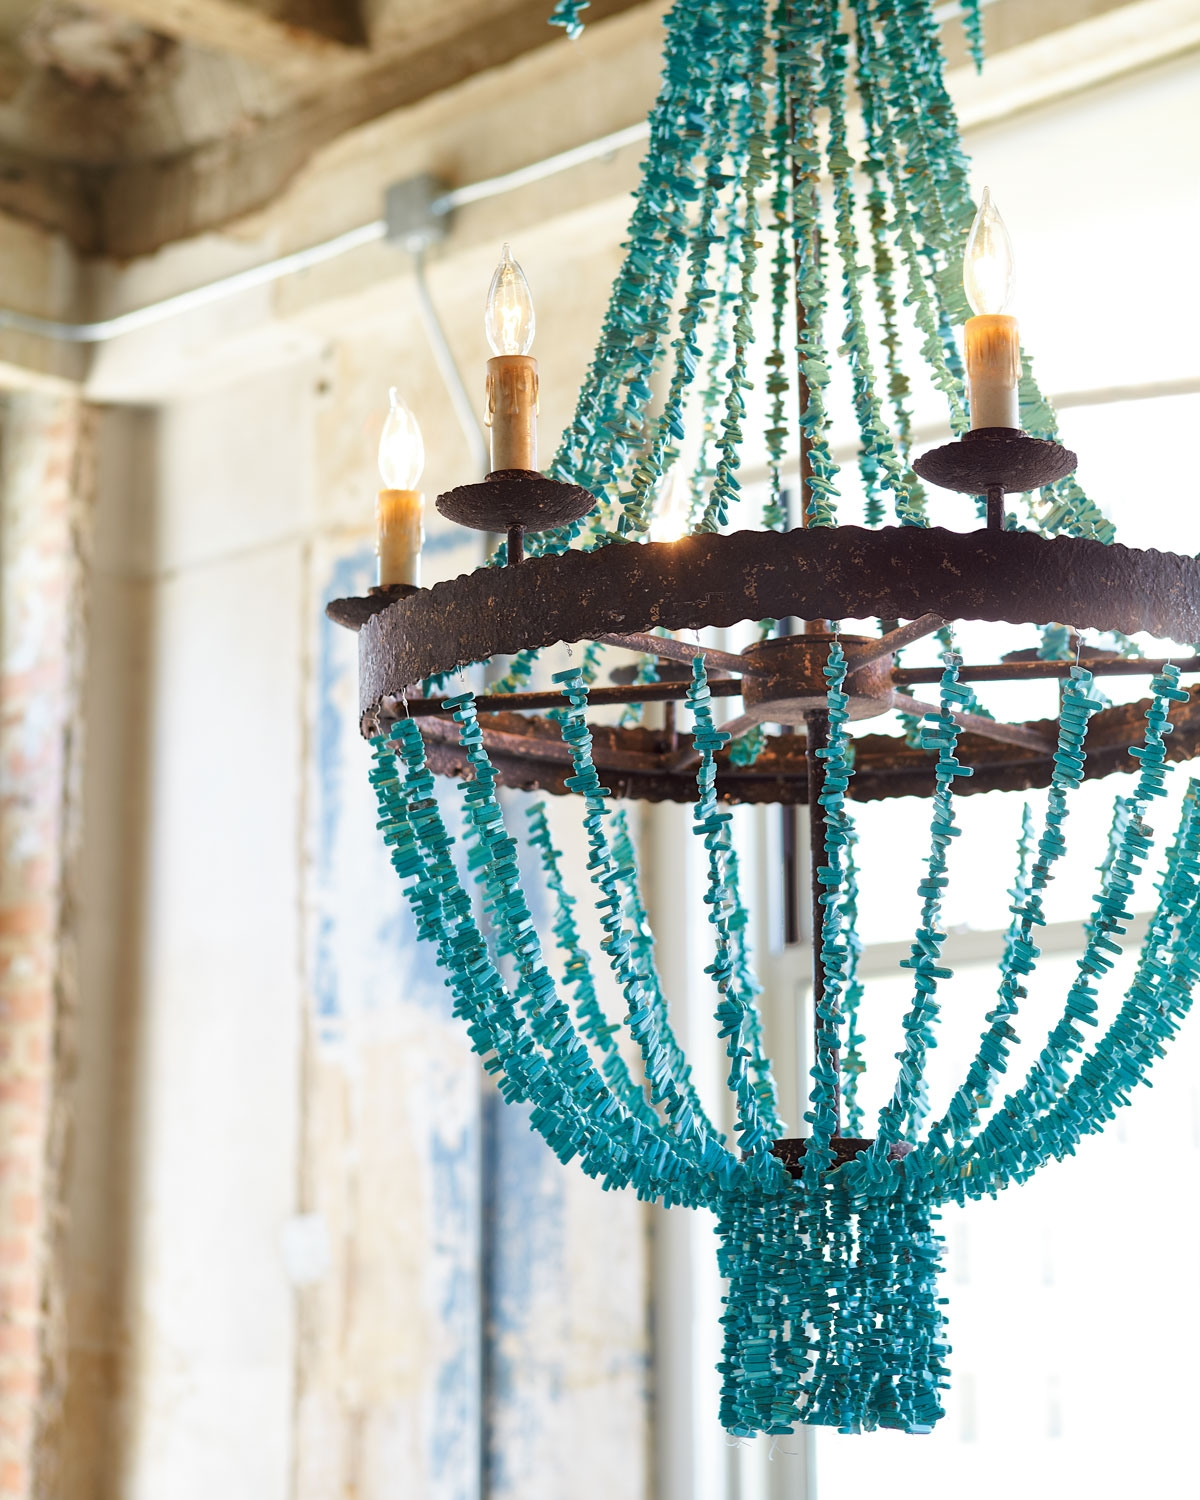 Chandeliers Everything Turquoise Regarding Turquoise Chandelier Lights (View 1 of 25)